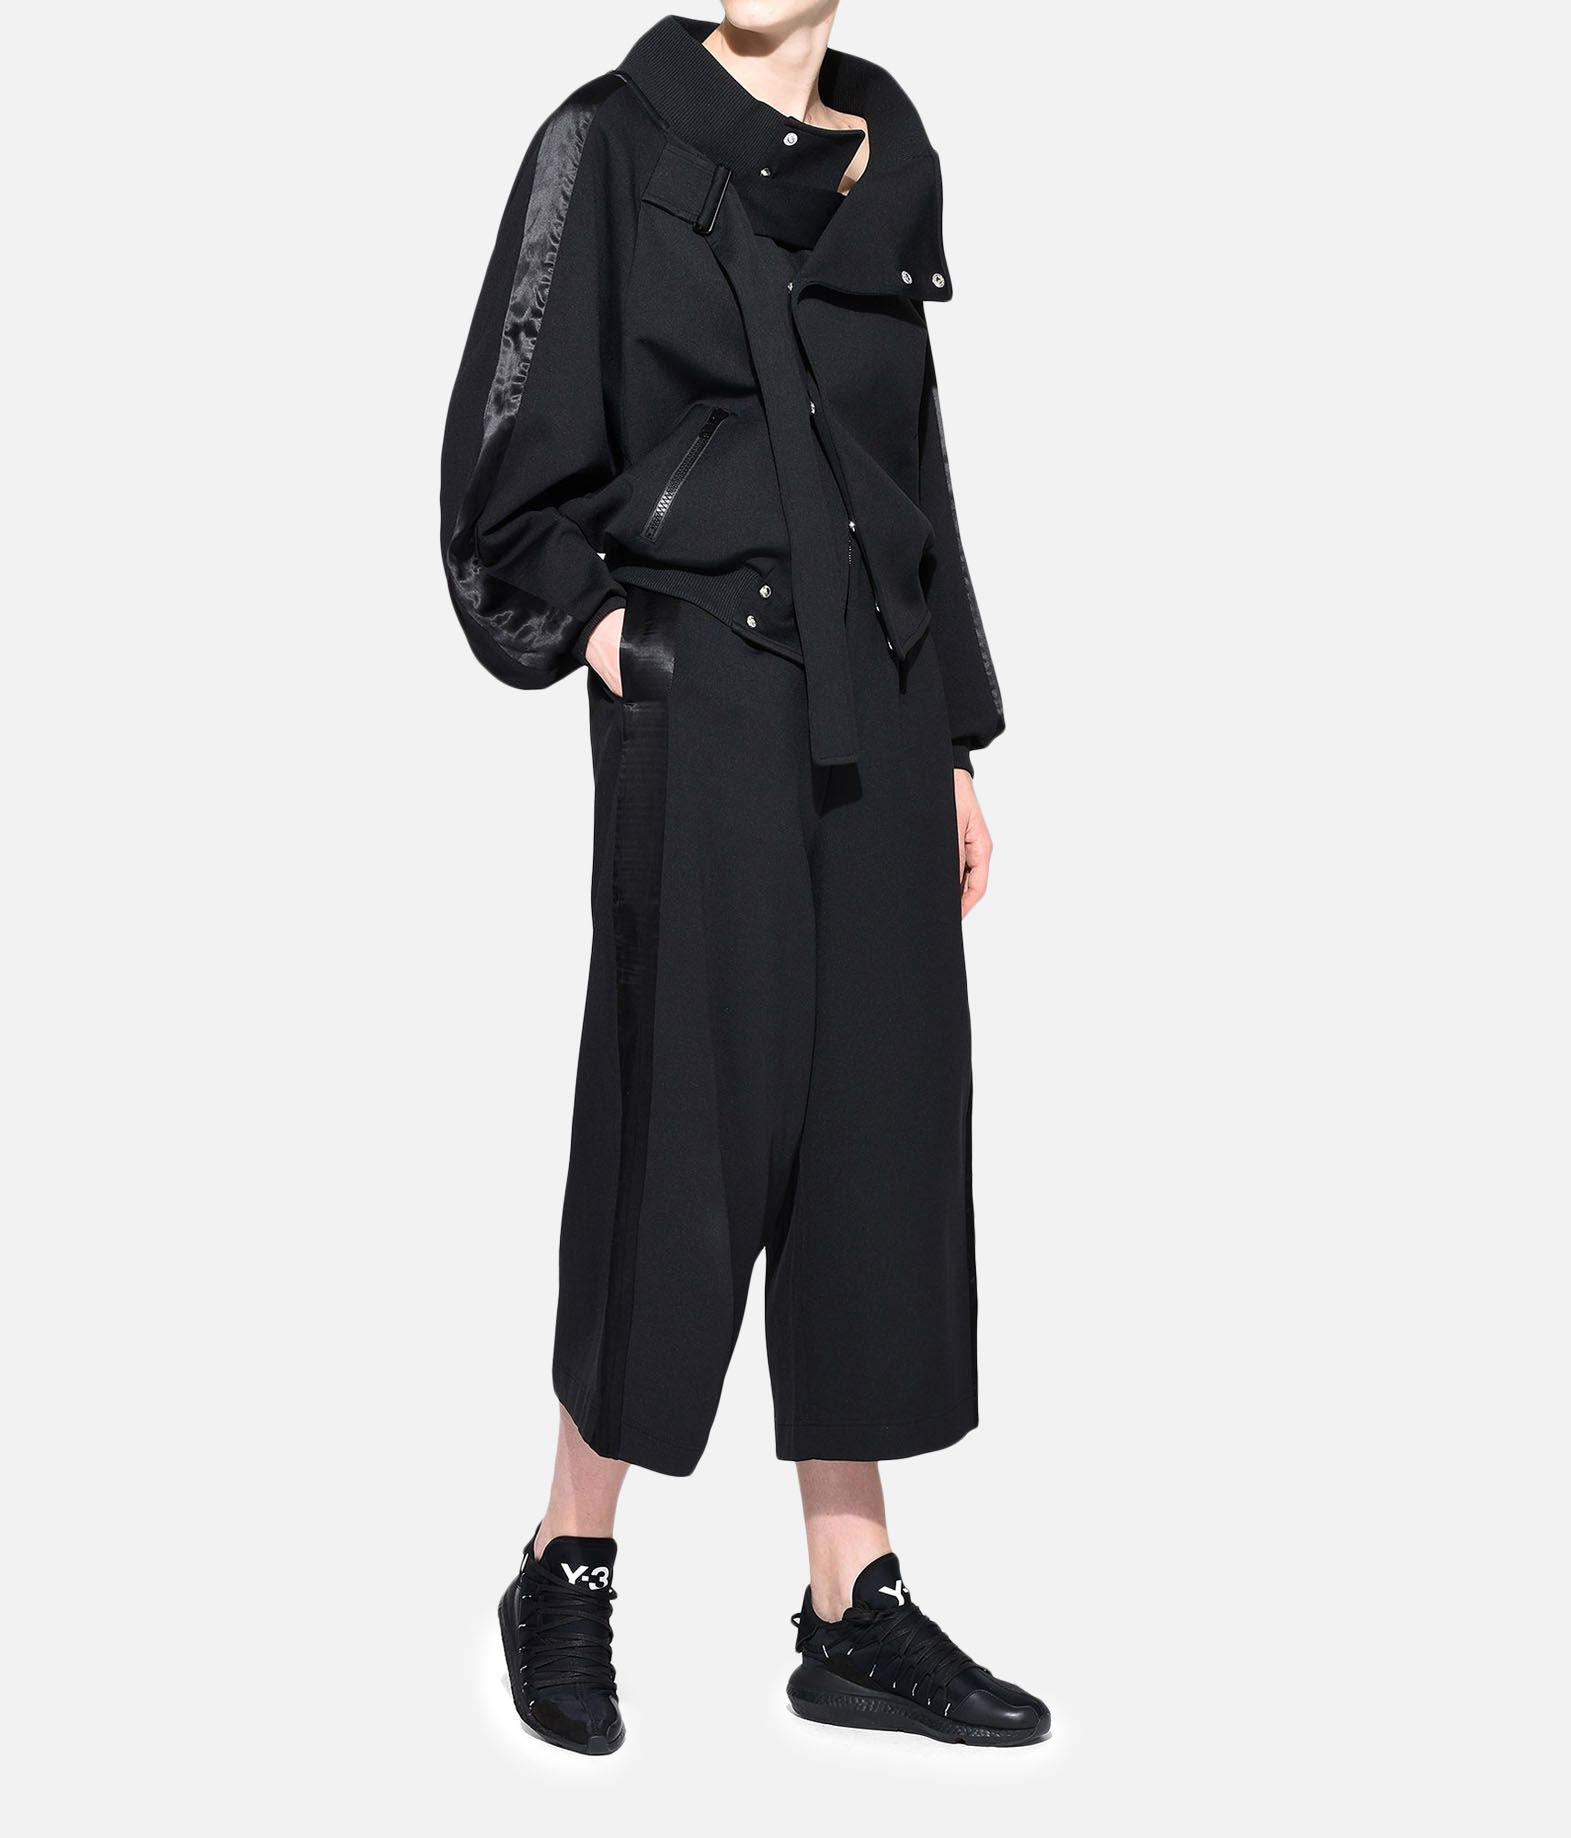 Y-3 Y-3 Matte Track Jacket Track top Woman a